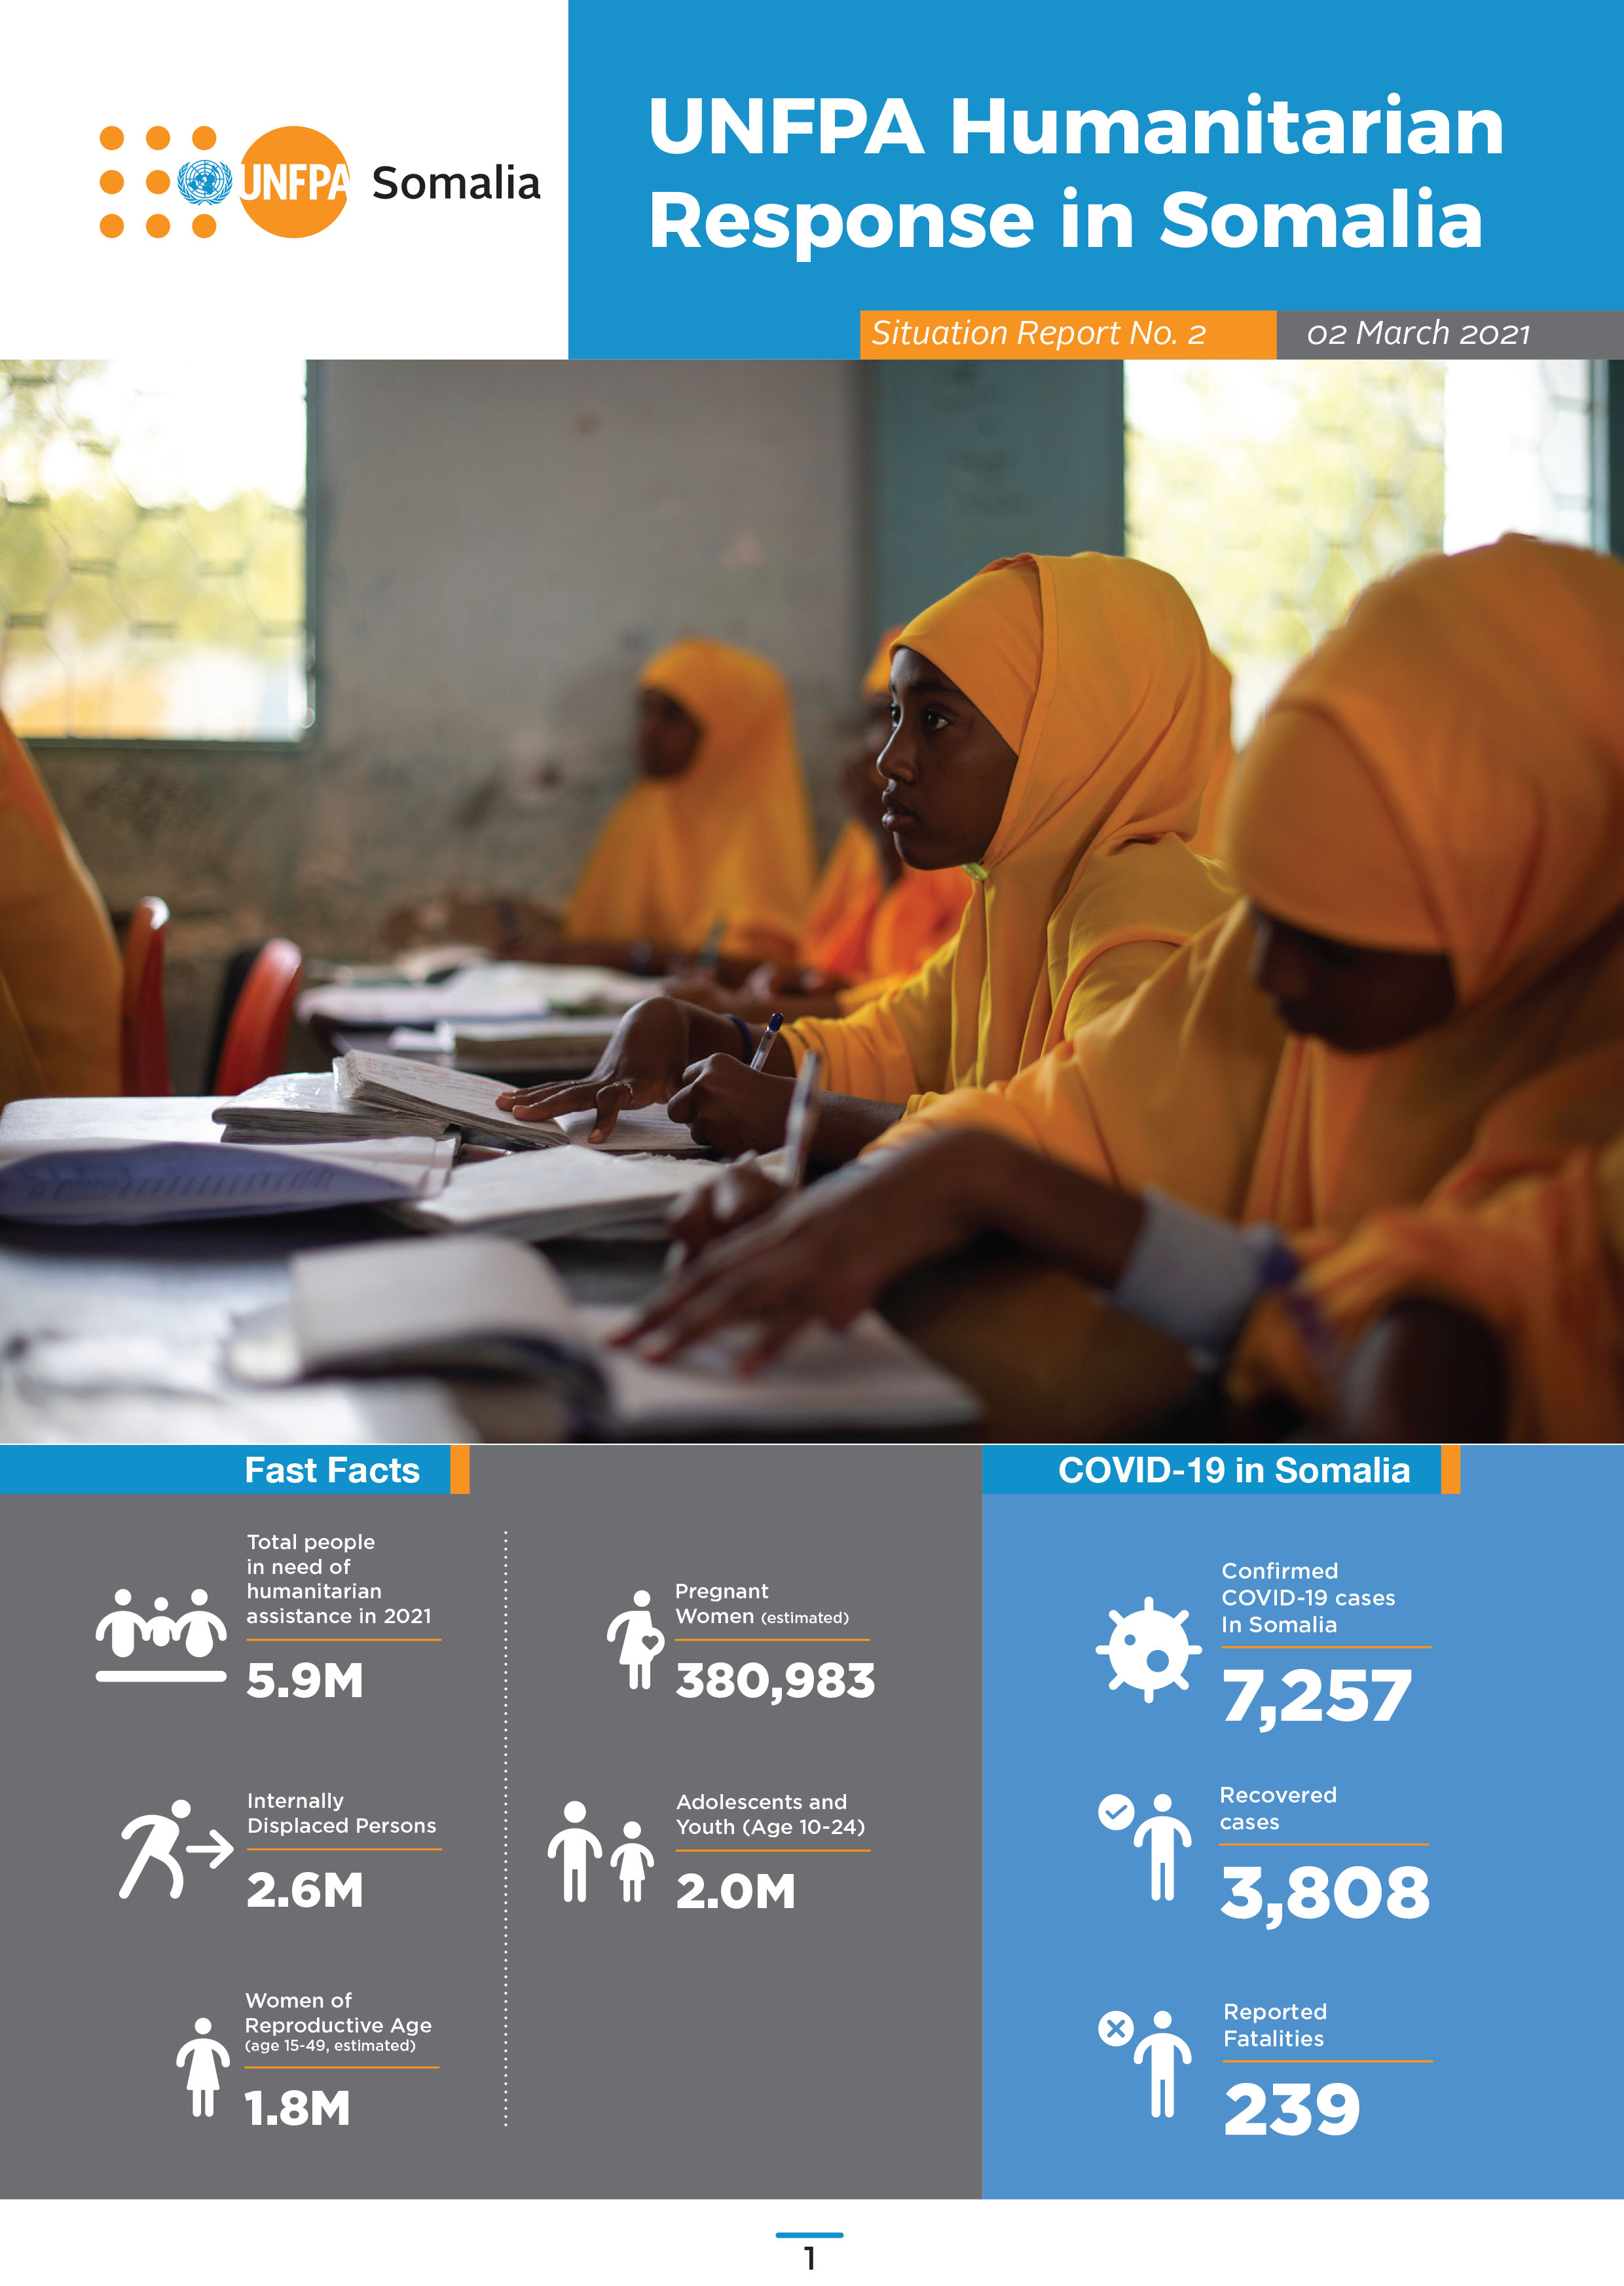 UNFPA Somalia Humanitarian Situation Report - 2 March 2021